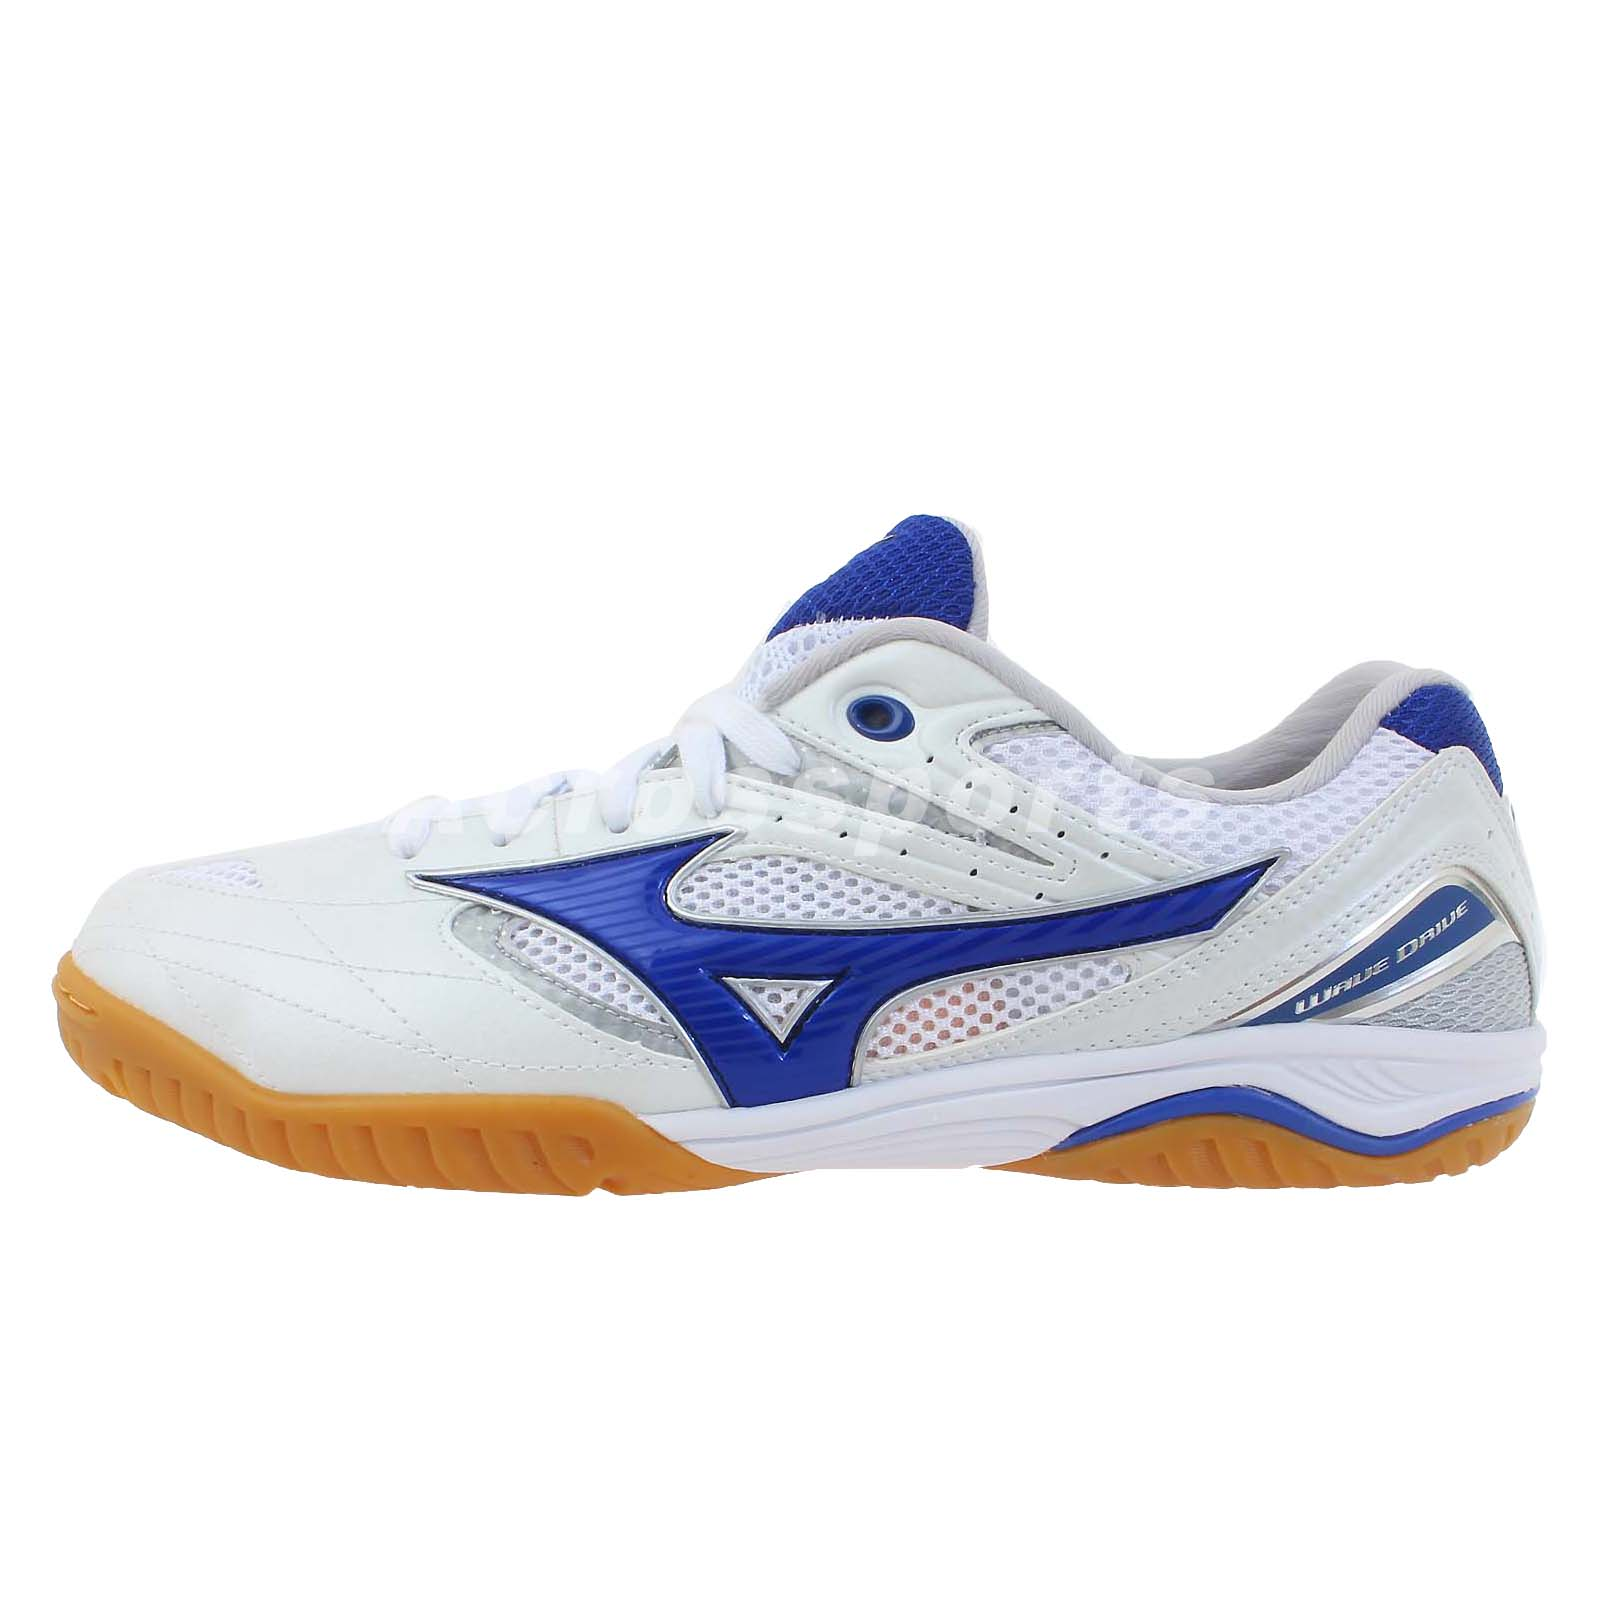 asics table tennis shoes philippines